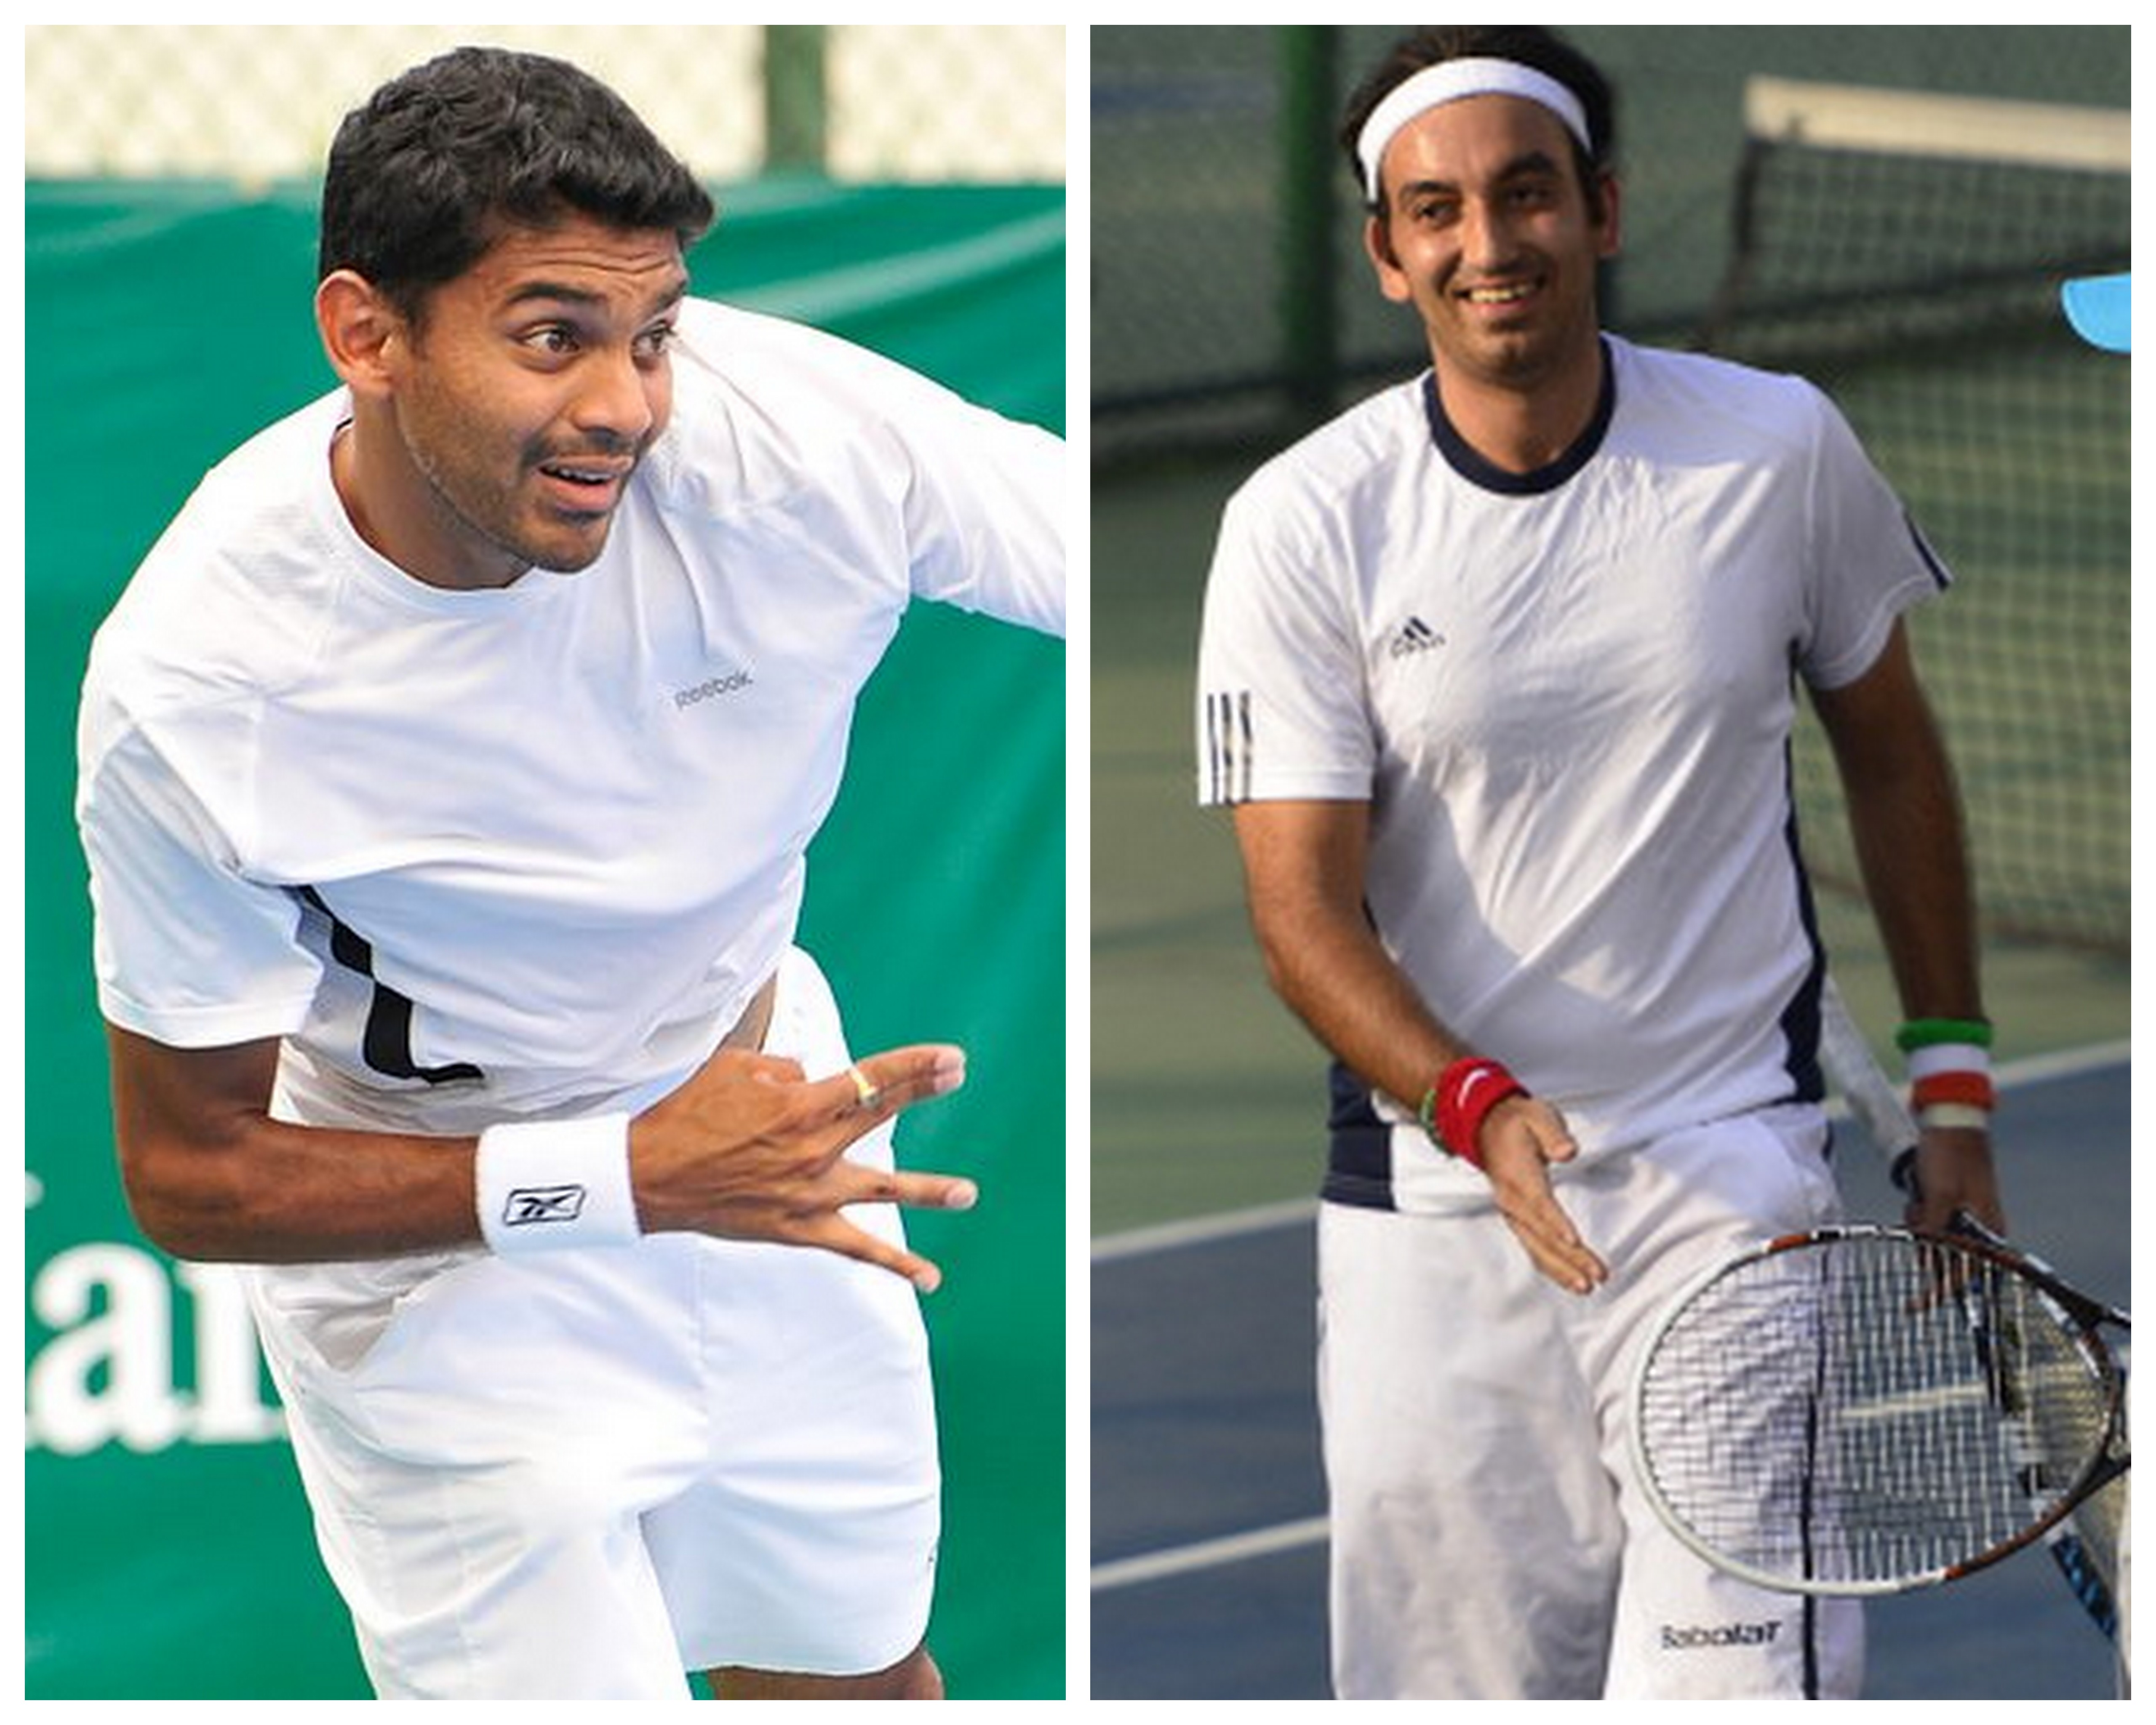 27-year-olds Purav Raja (R) and Divij Sharan (L) are through to their first ATP level semi-final at the Clara Open in Bogota. (Getty Images)